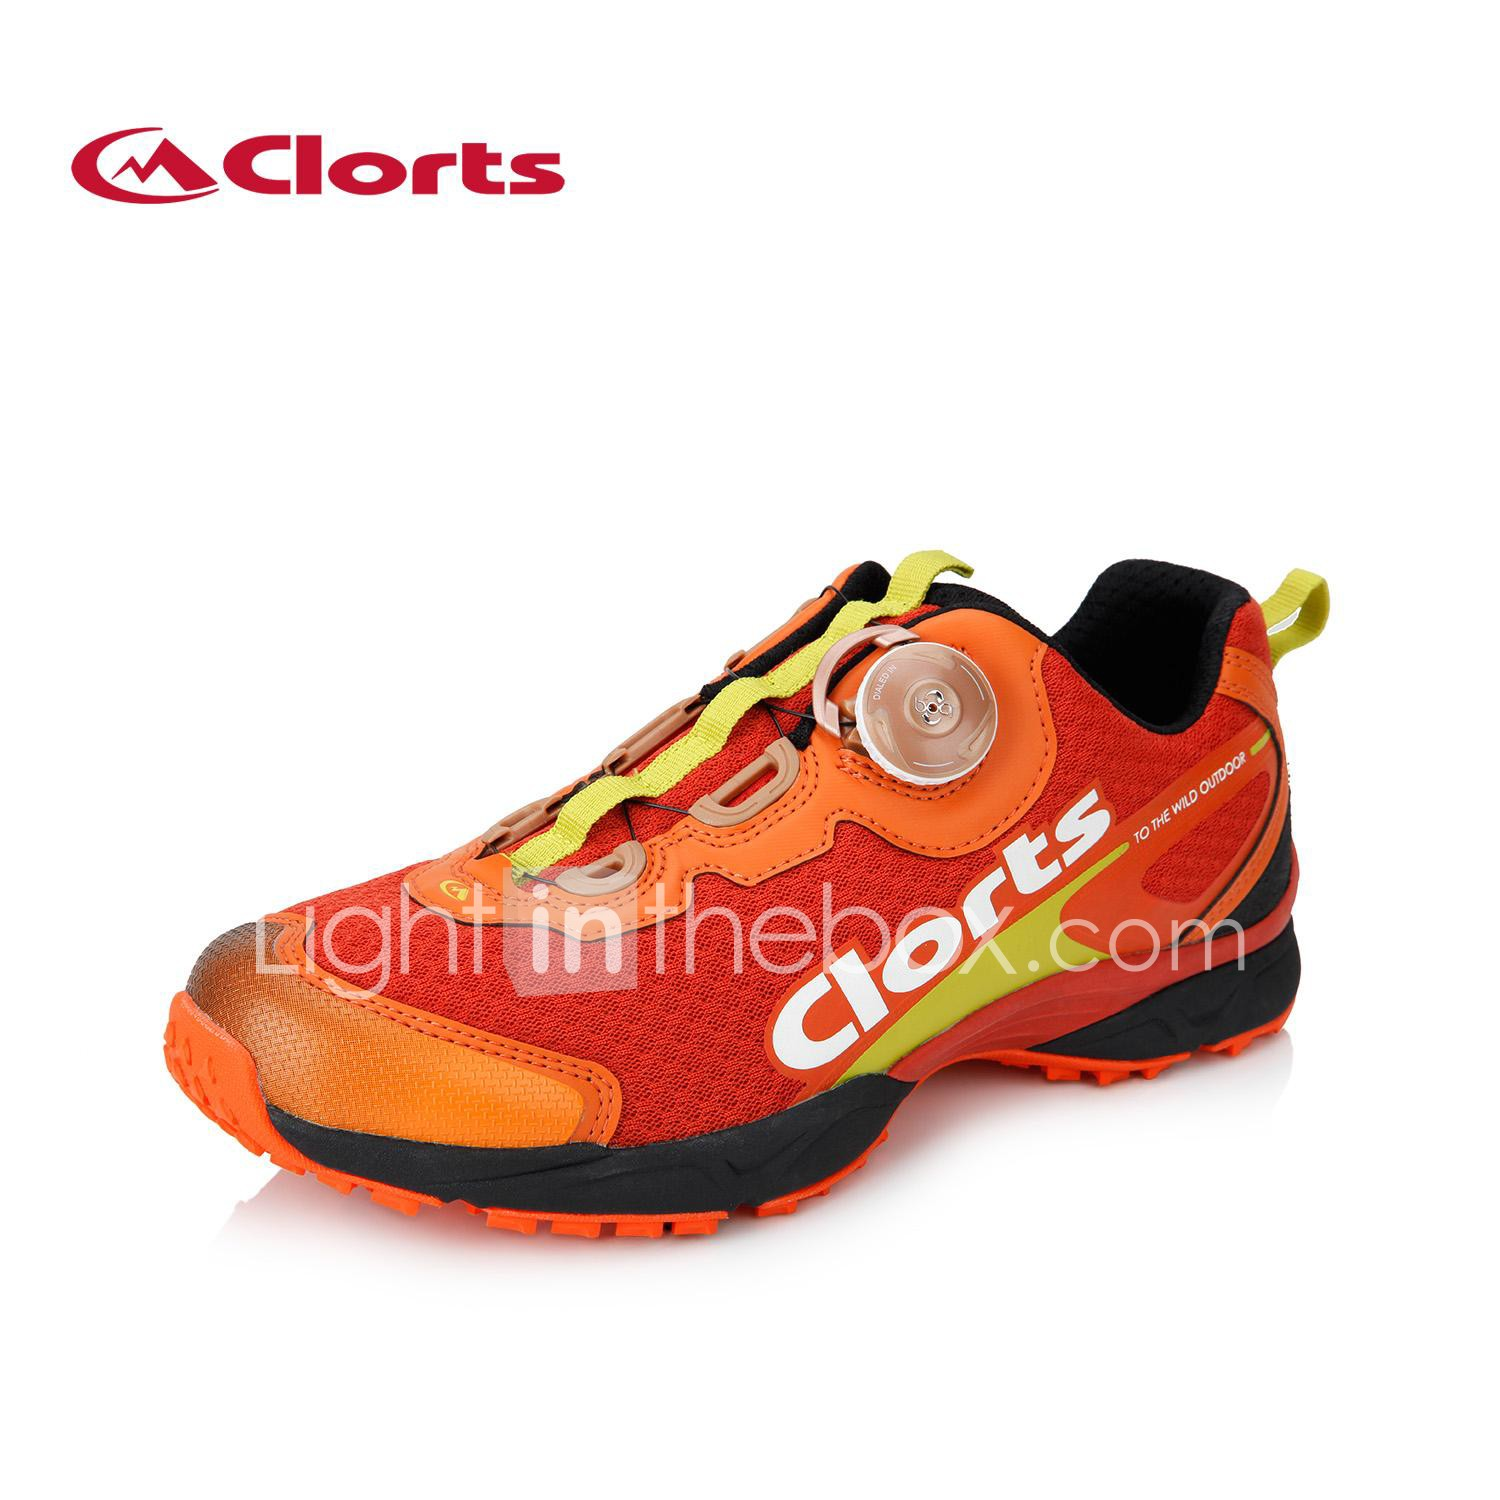 clorts hombres 2015 trail running zapatos deportivos zapatos